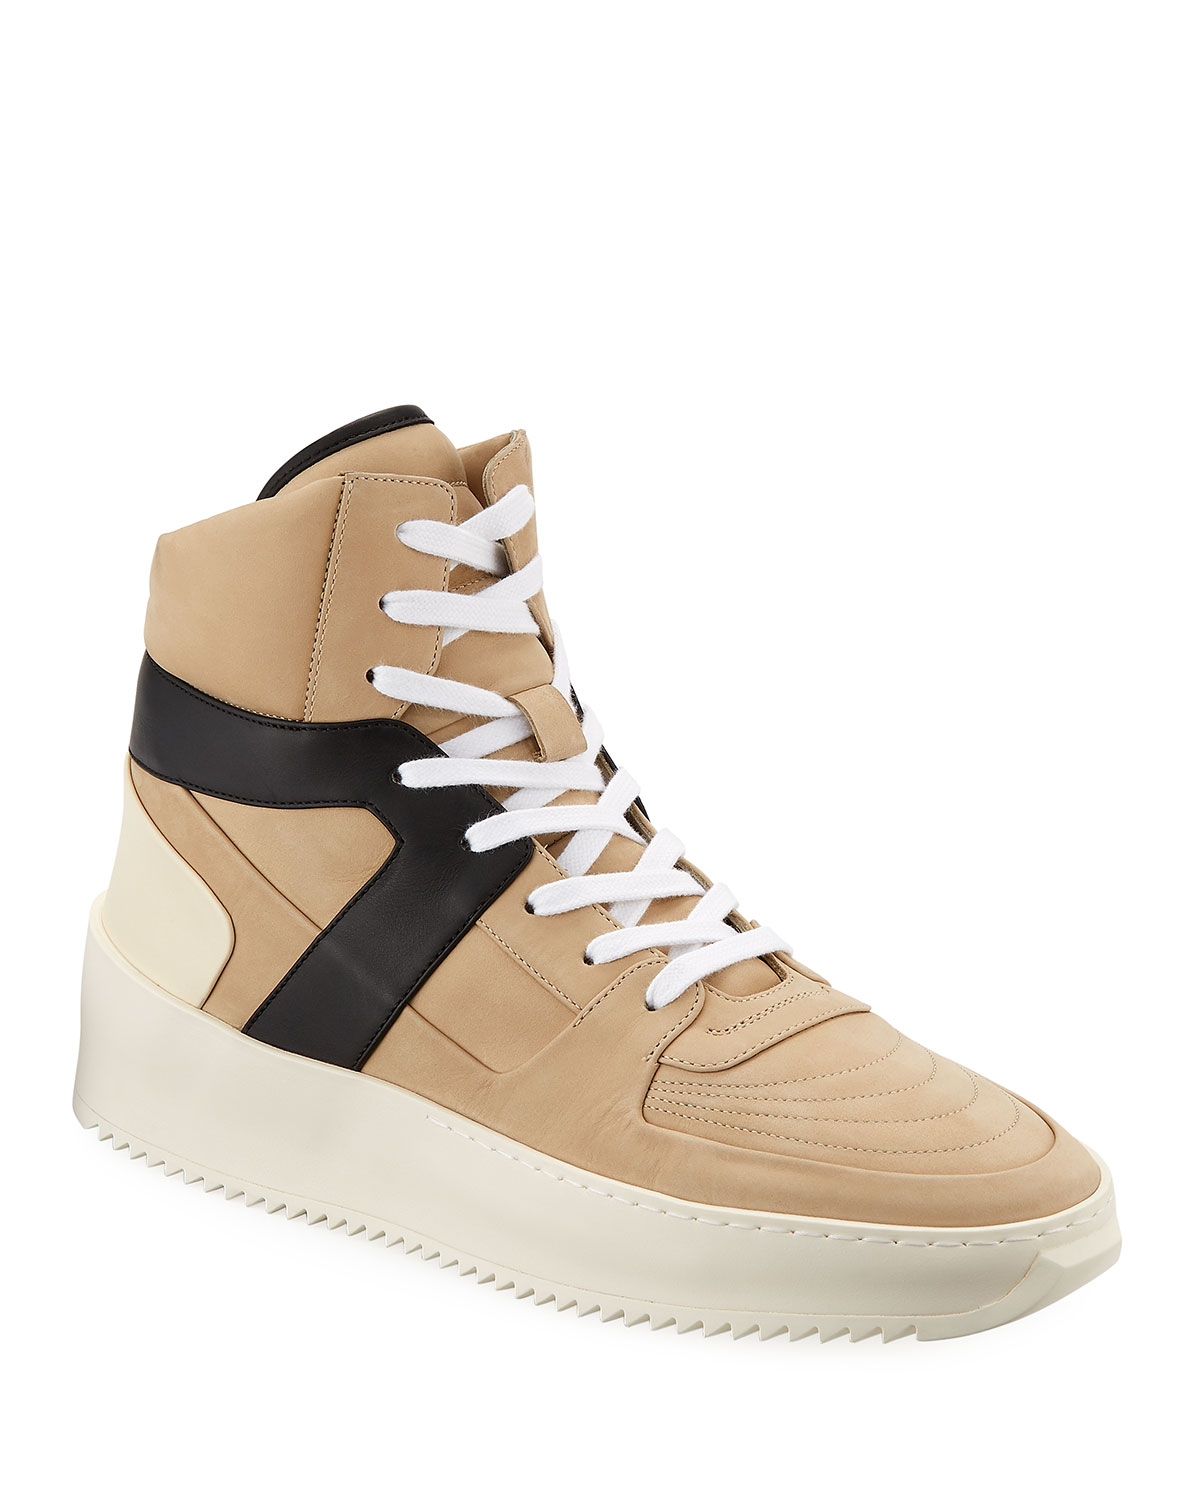 fear of god high top sneakers